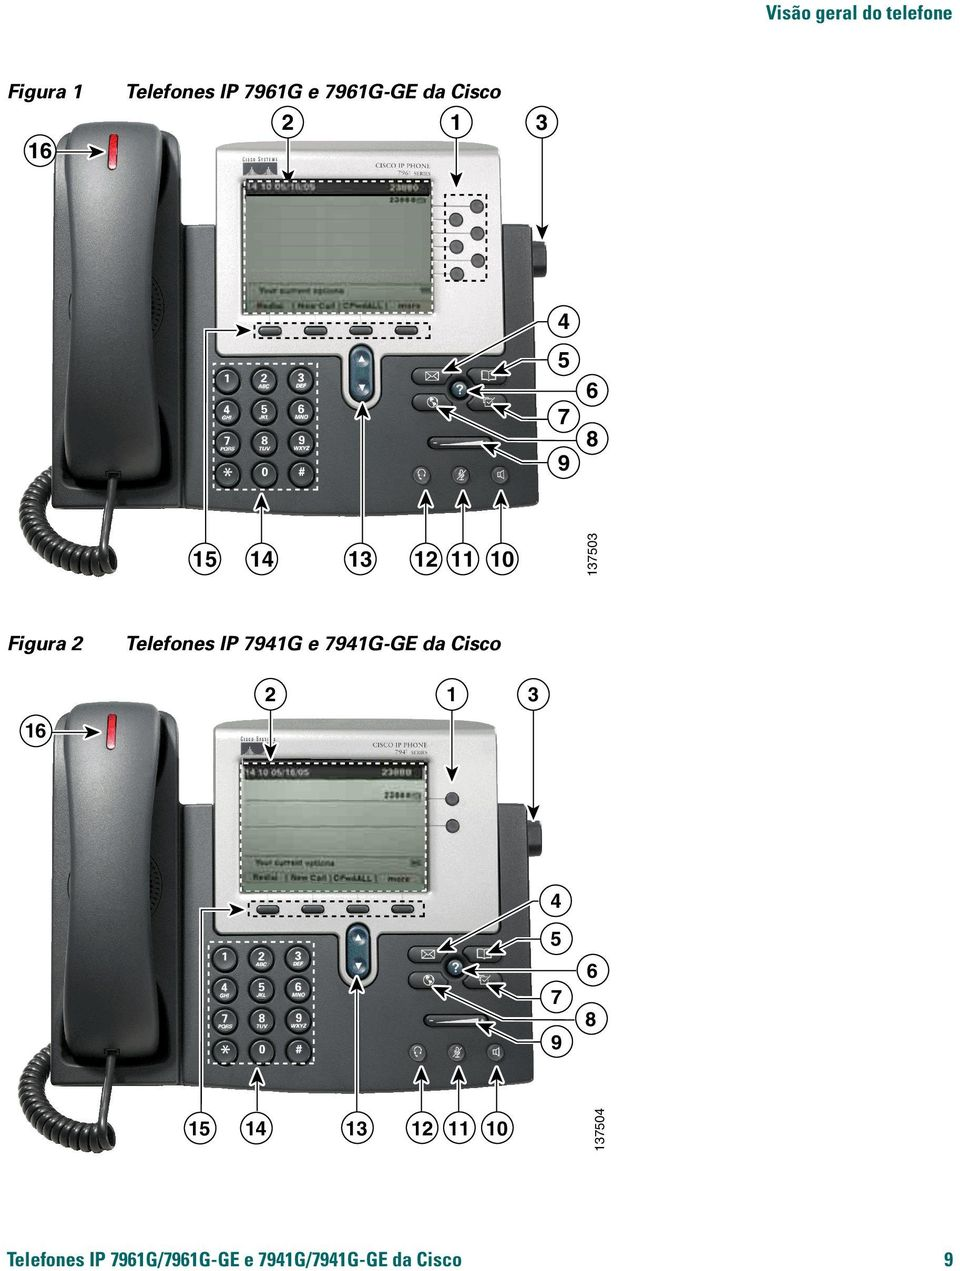 Telefones IP 7941G e 7941G-GE da Cisco 2 1 3 16 1 4 5 7 9 6 8 15 14